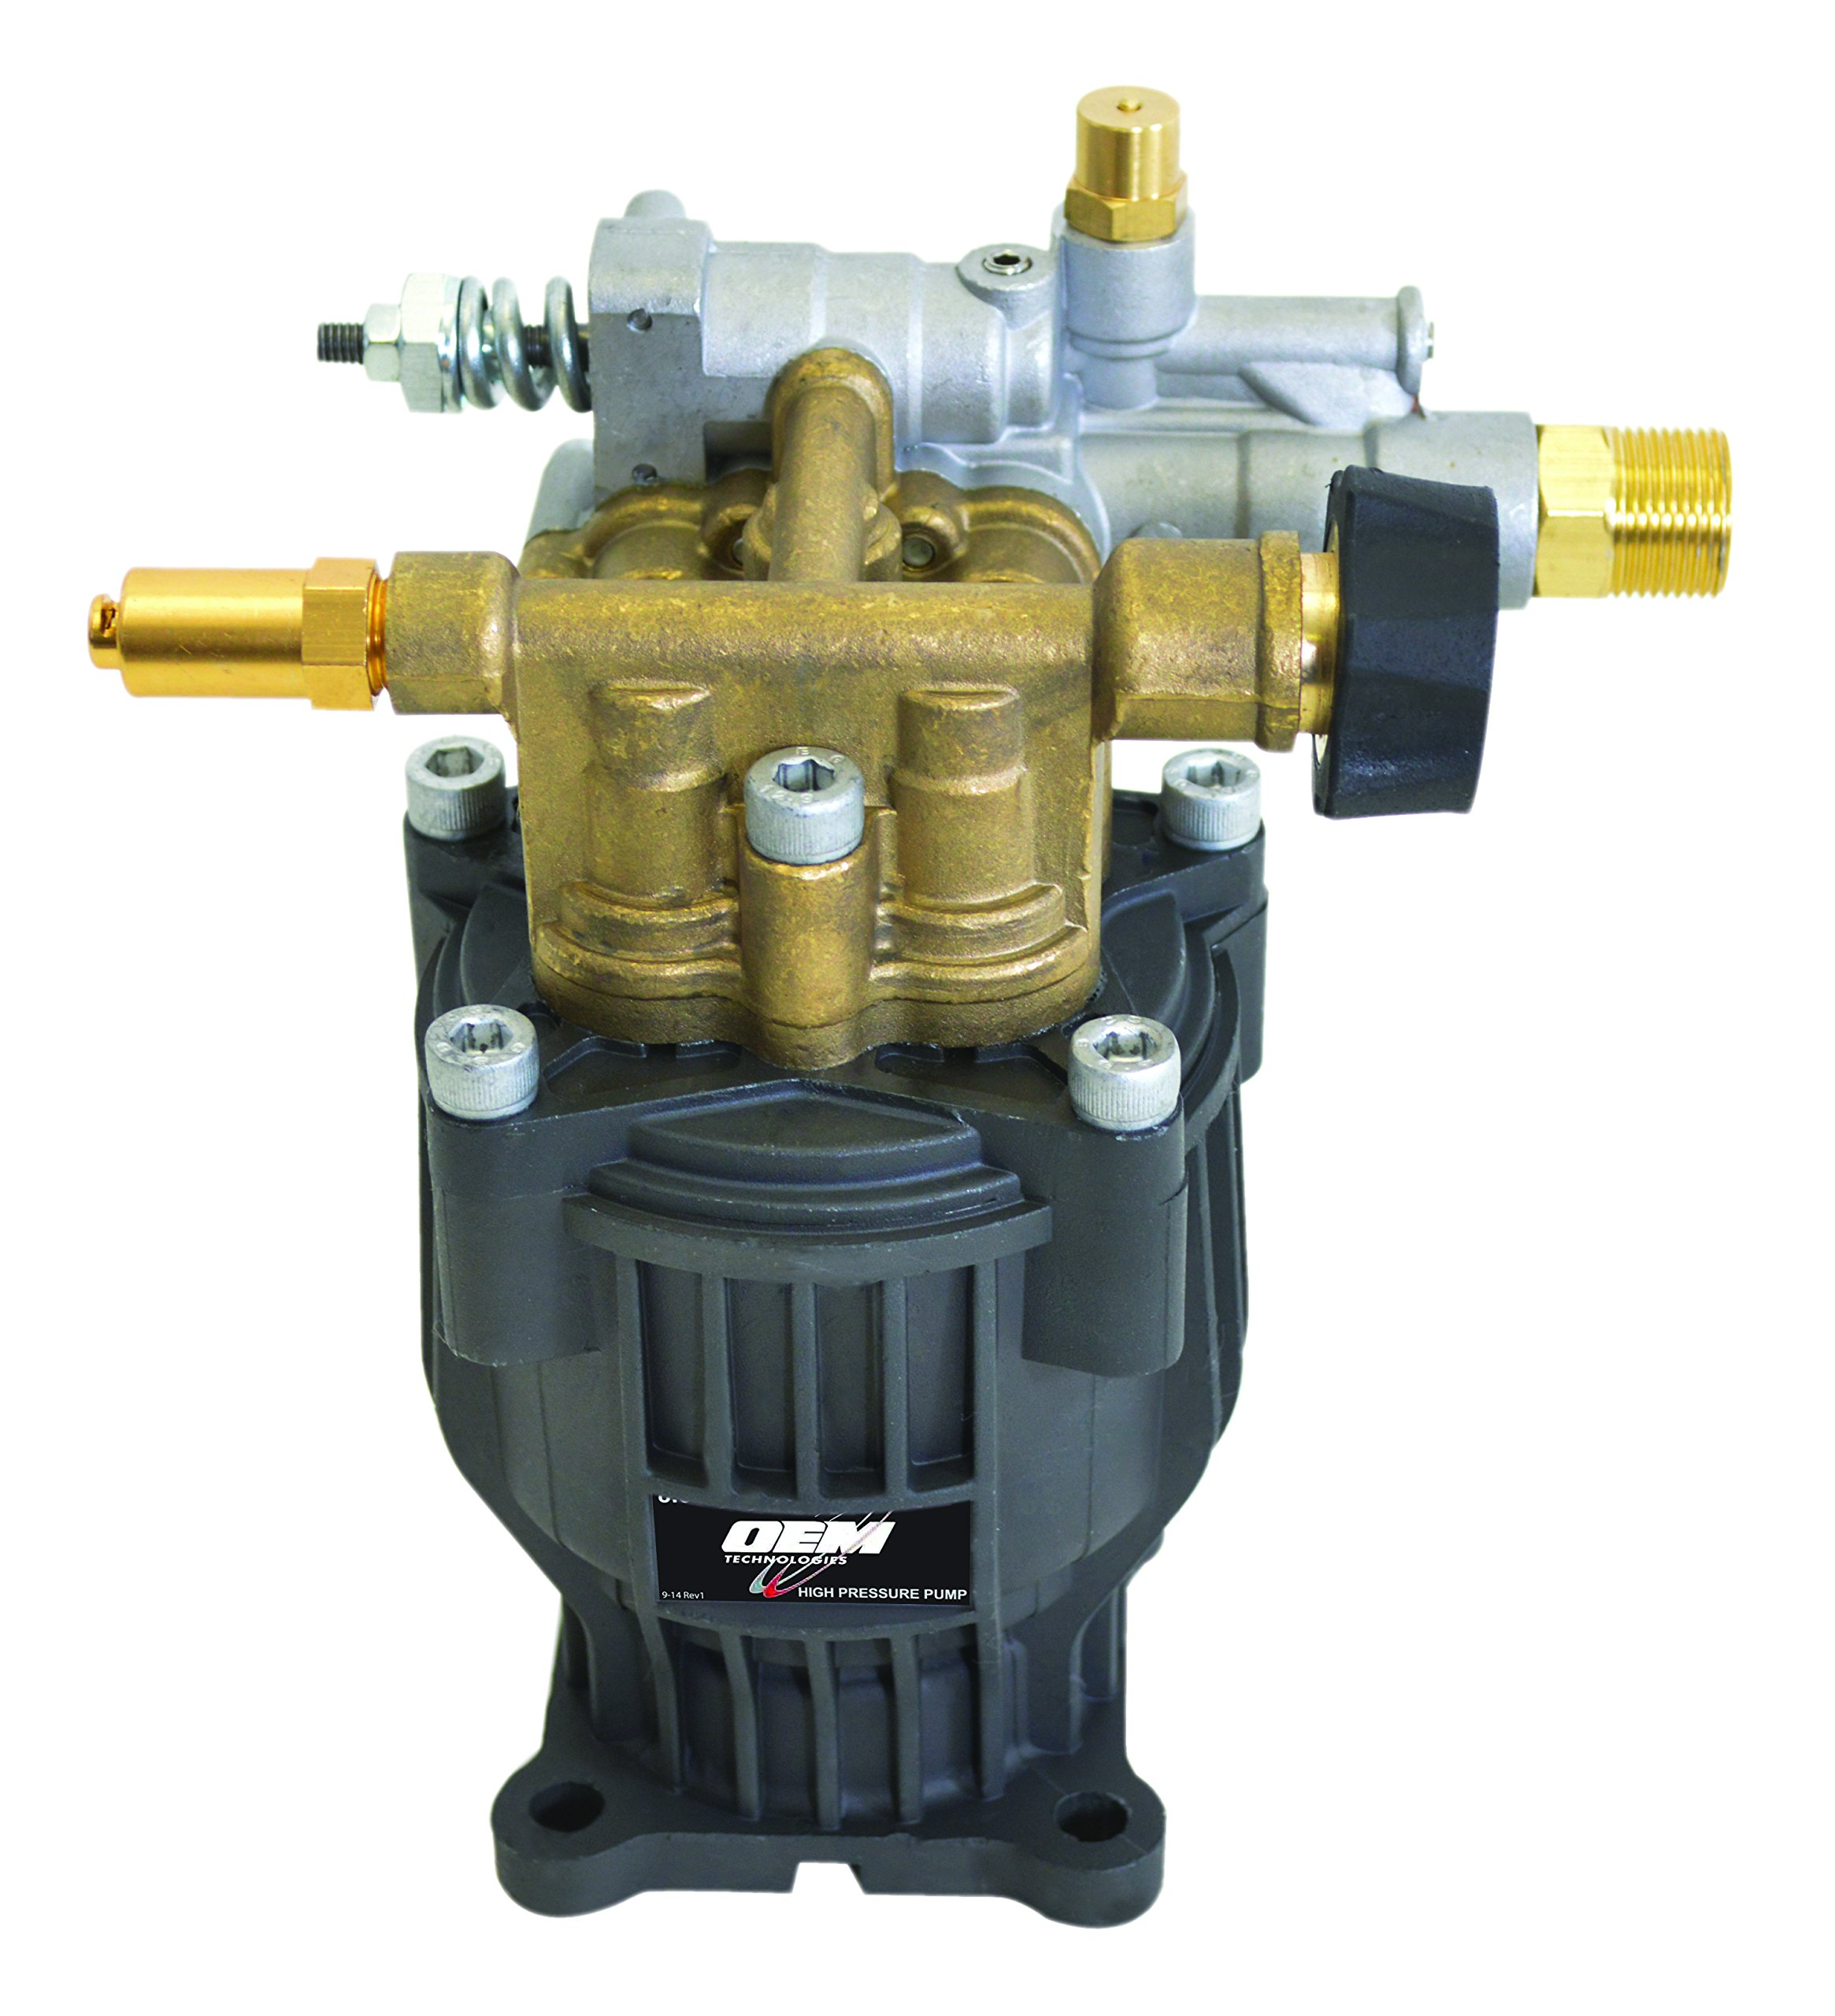 SIMPSON Cleaning 90029 Axial Cam Horizontal Pressure Washer Replacement Pump 8.6CAH12B 3100 PSI @ 2.5 GPM with Brass Head and PowerBoost Technology by Simpson Cleaning (Image #4)